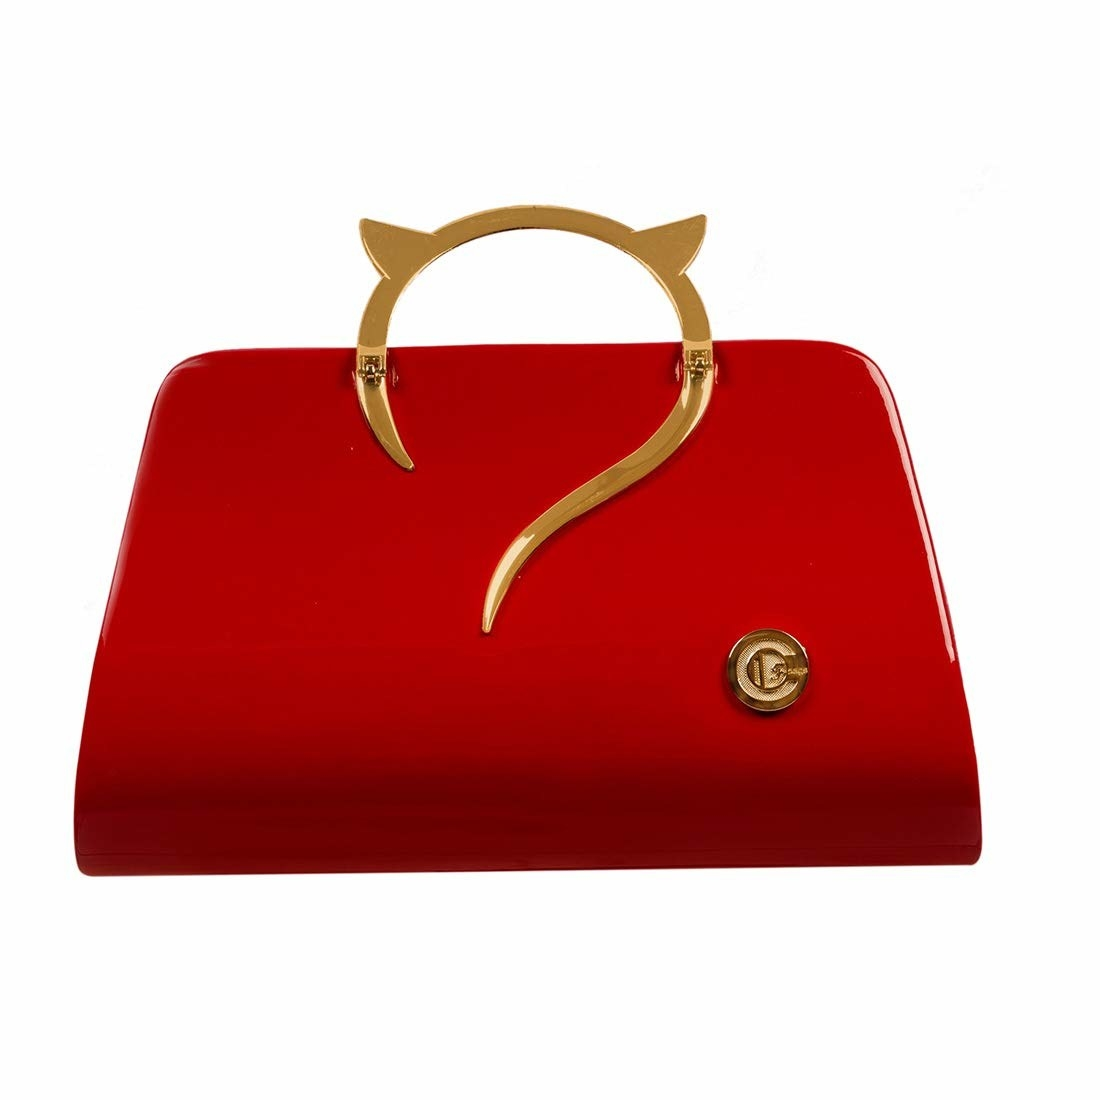 A red clutch with a cat-ears handle